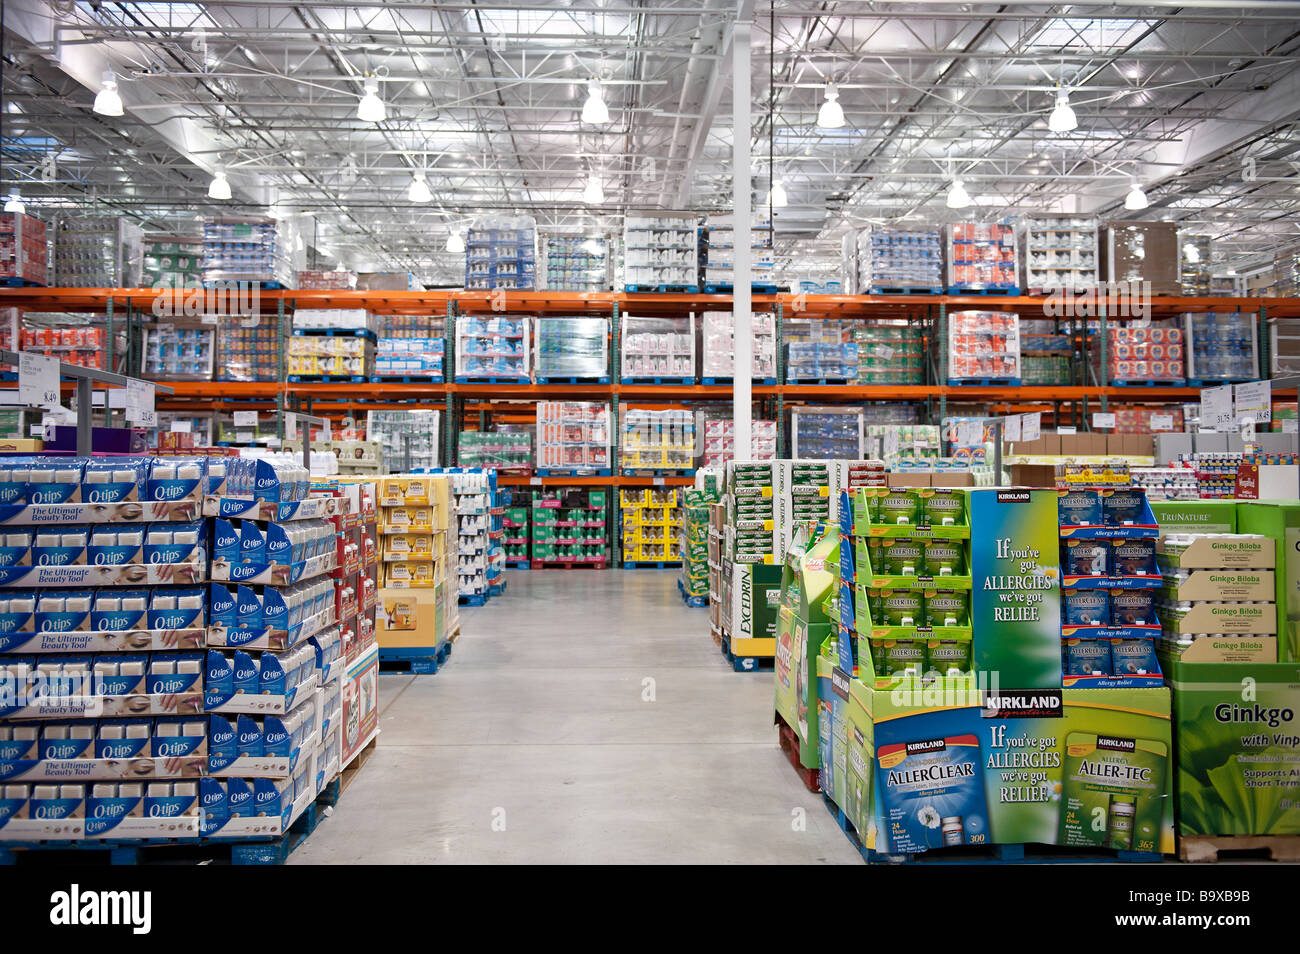 Costco wholesale shopping club stock photo 23321911 alamy costco wholesale shopping club altavistaventures Images